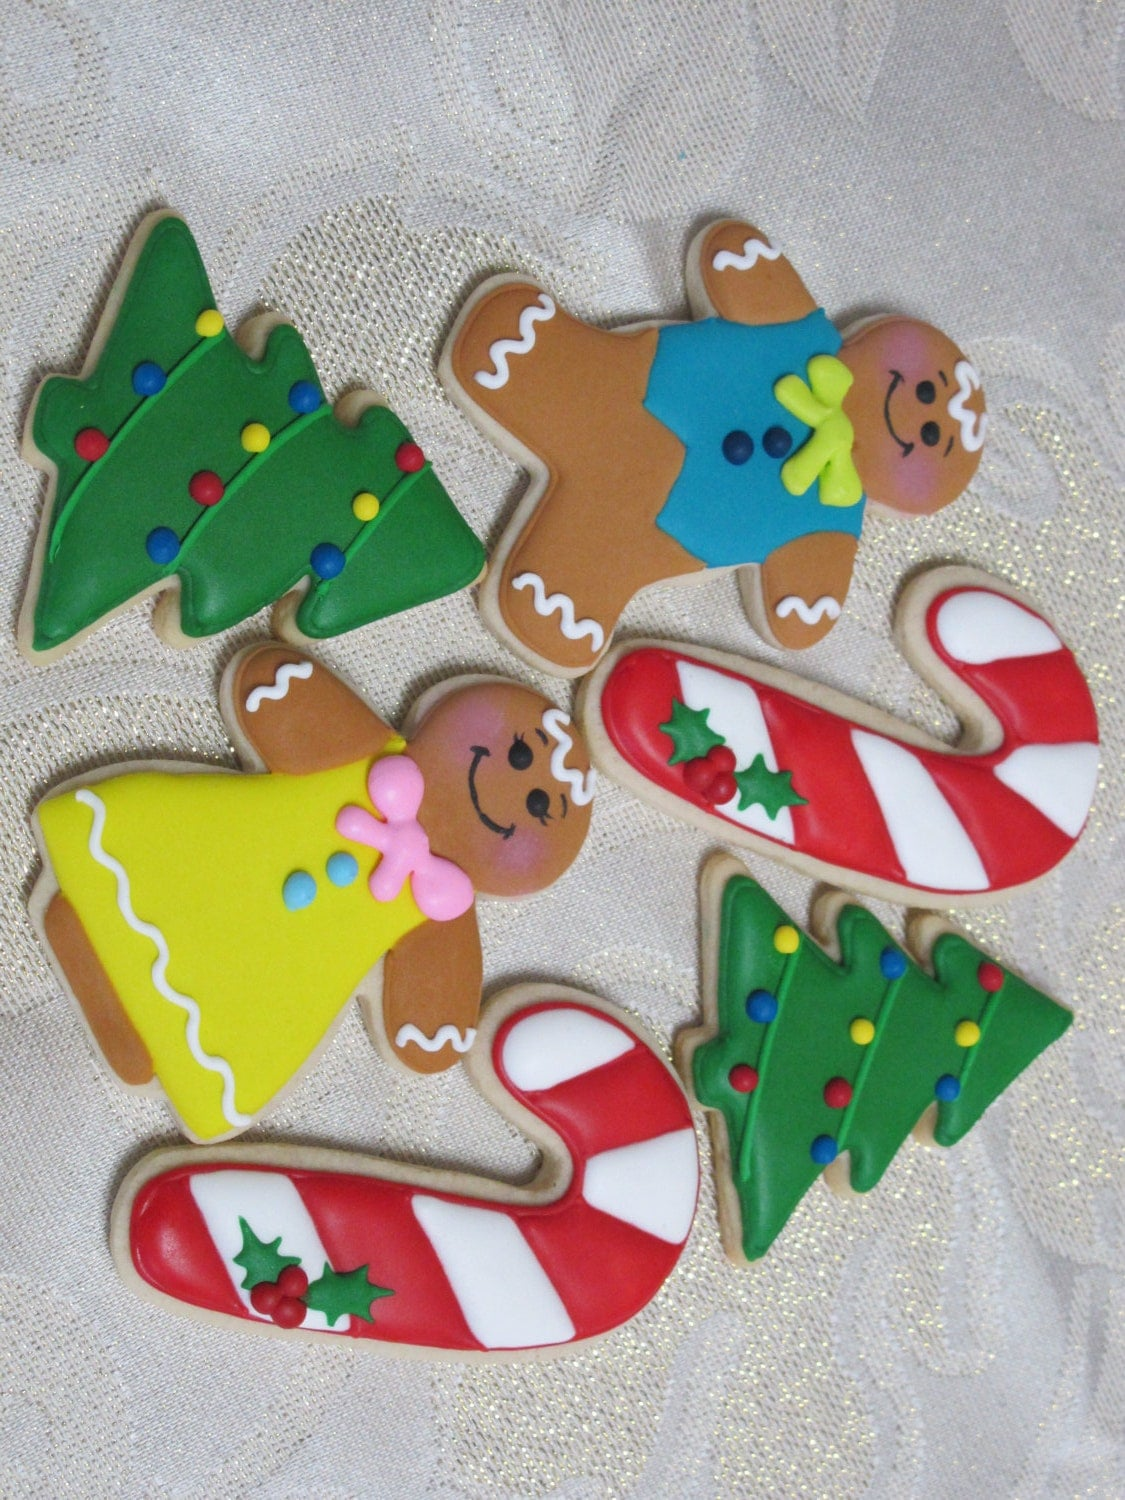 Images Of Christmas Decorated Sugar Cookies By MartaIngros